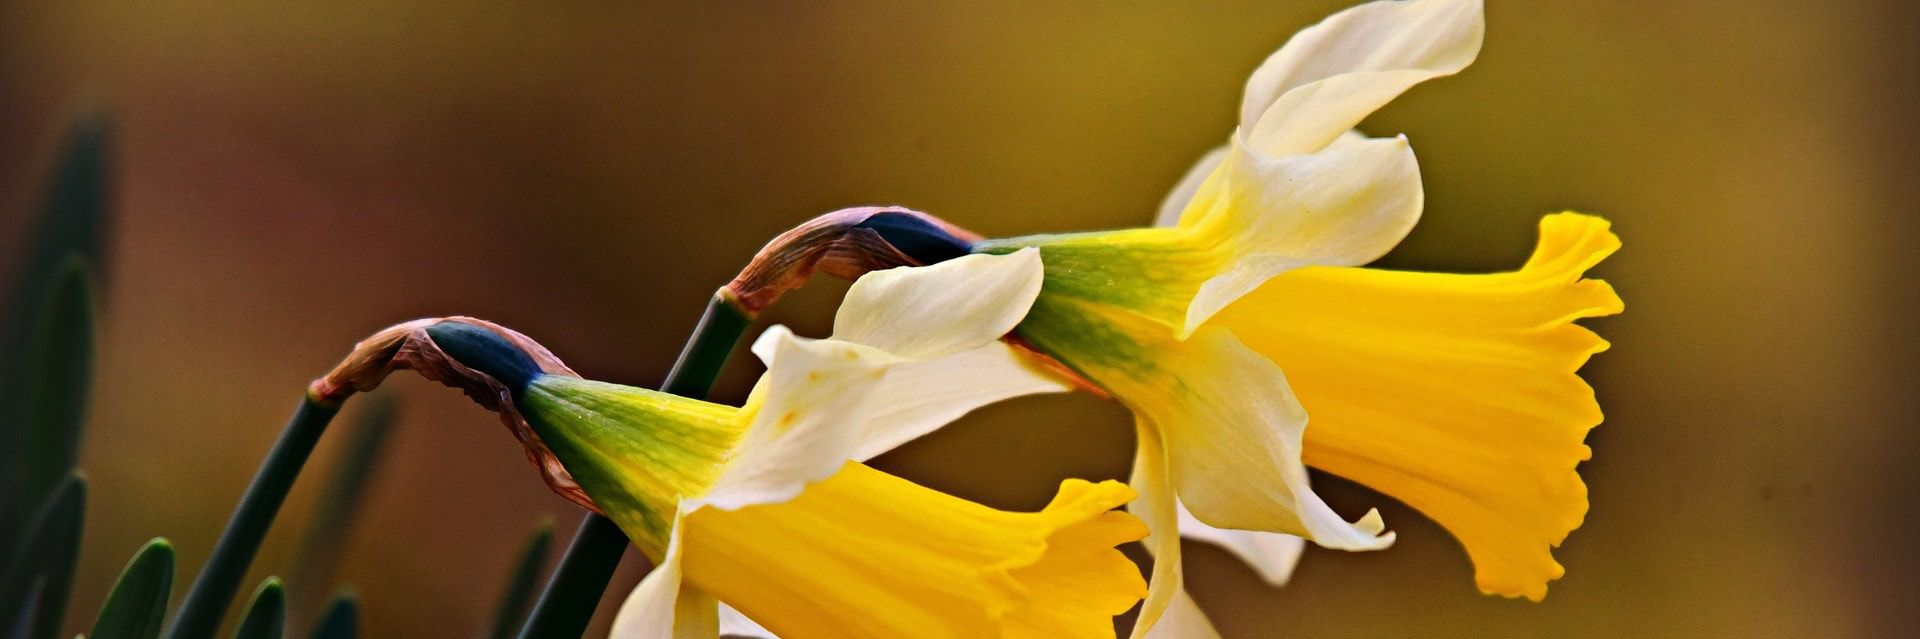 Profile photograph of two yellow daffodils blooming in front of a light brown backround